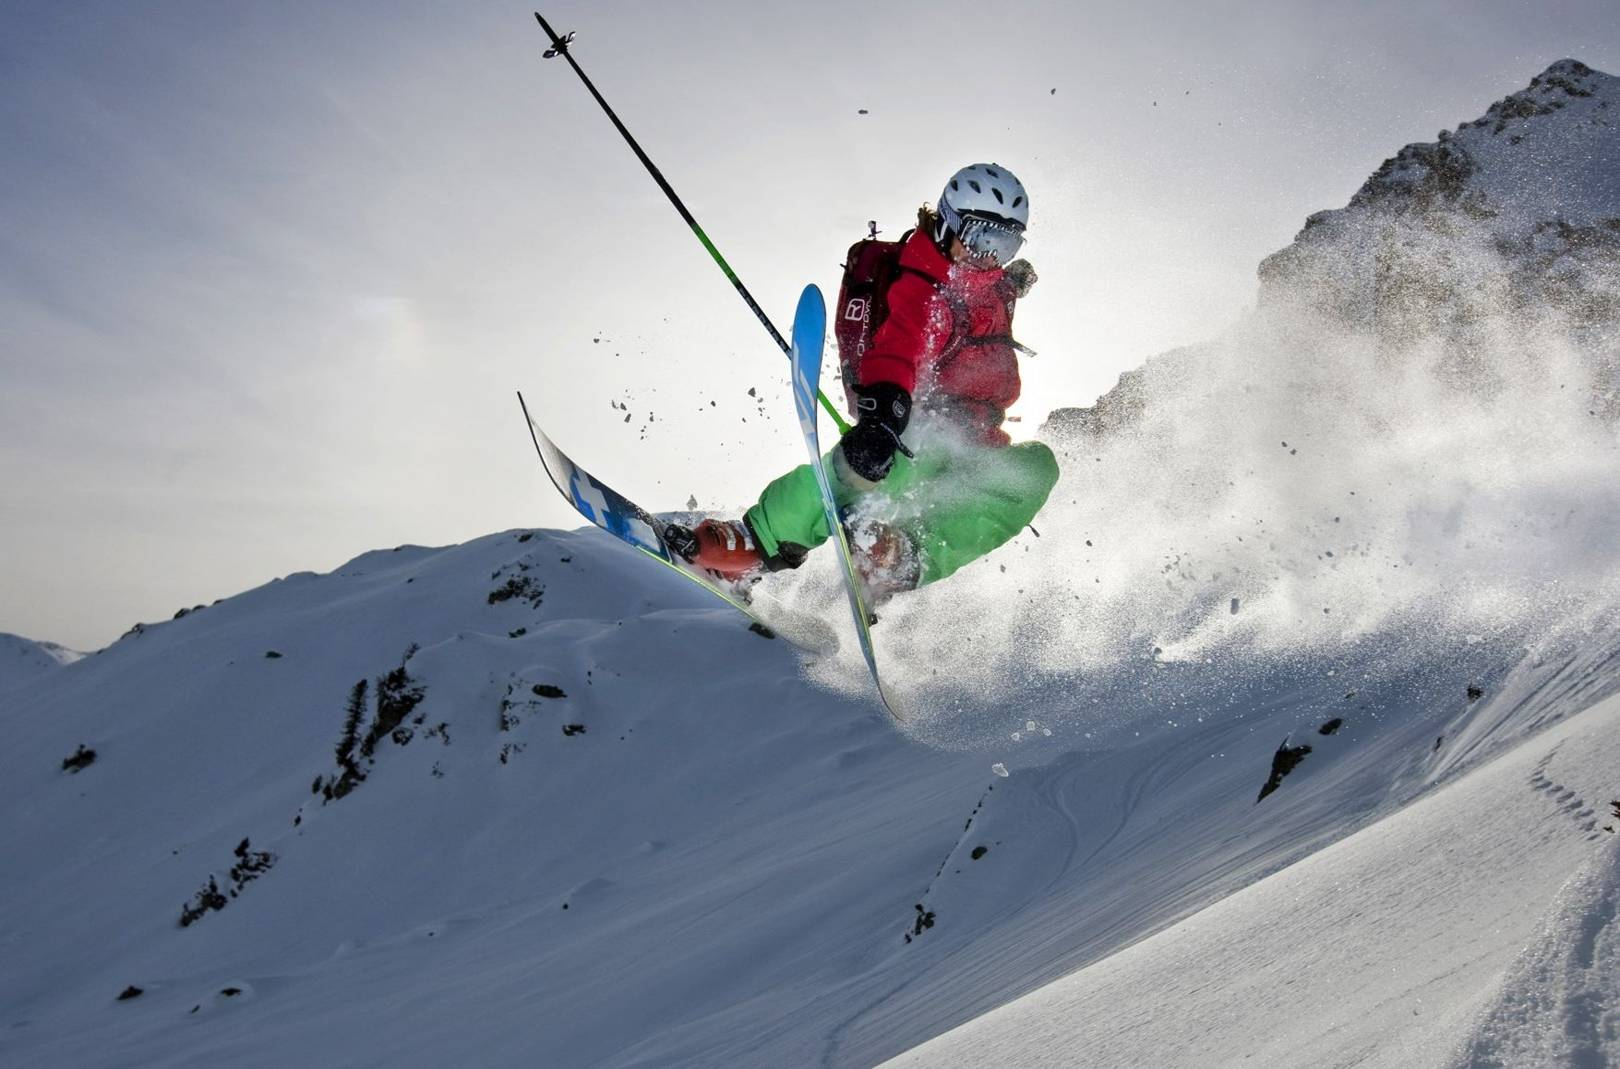 how to 360 on skis jump guide british gq